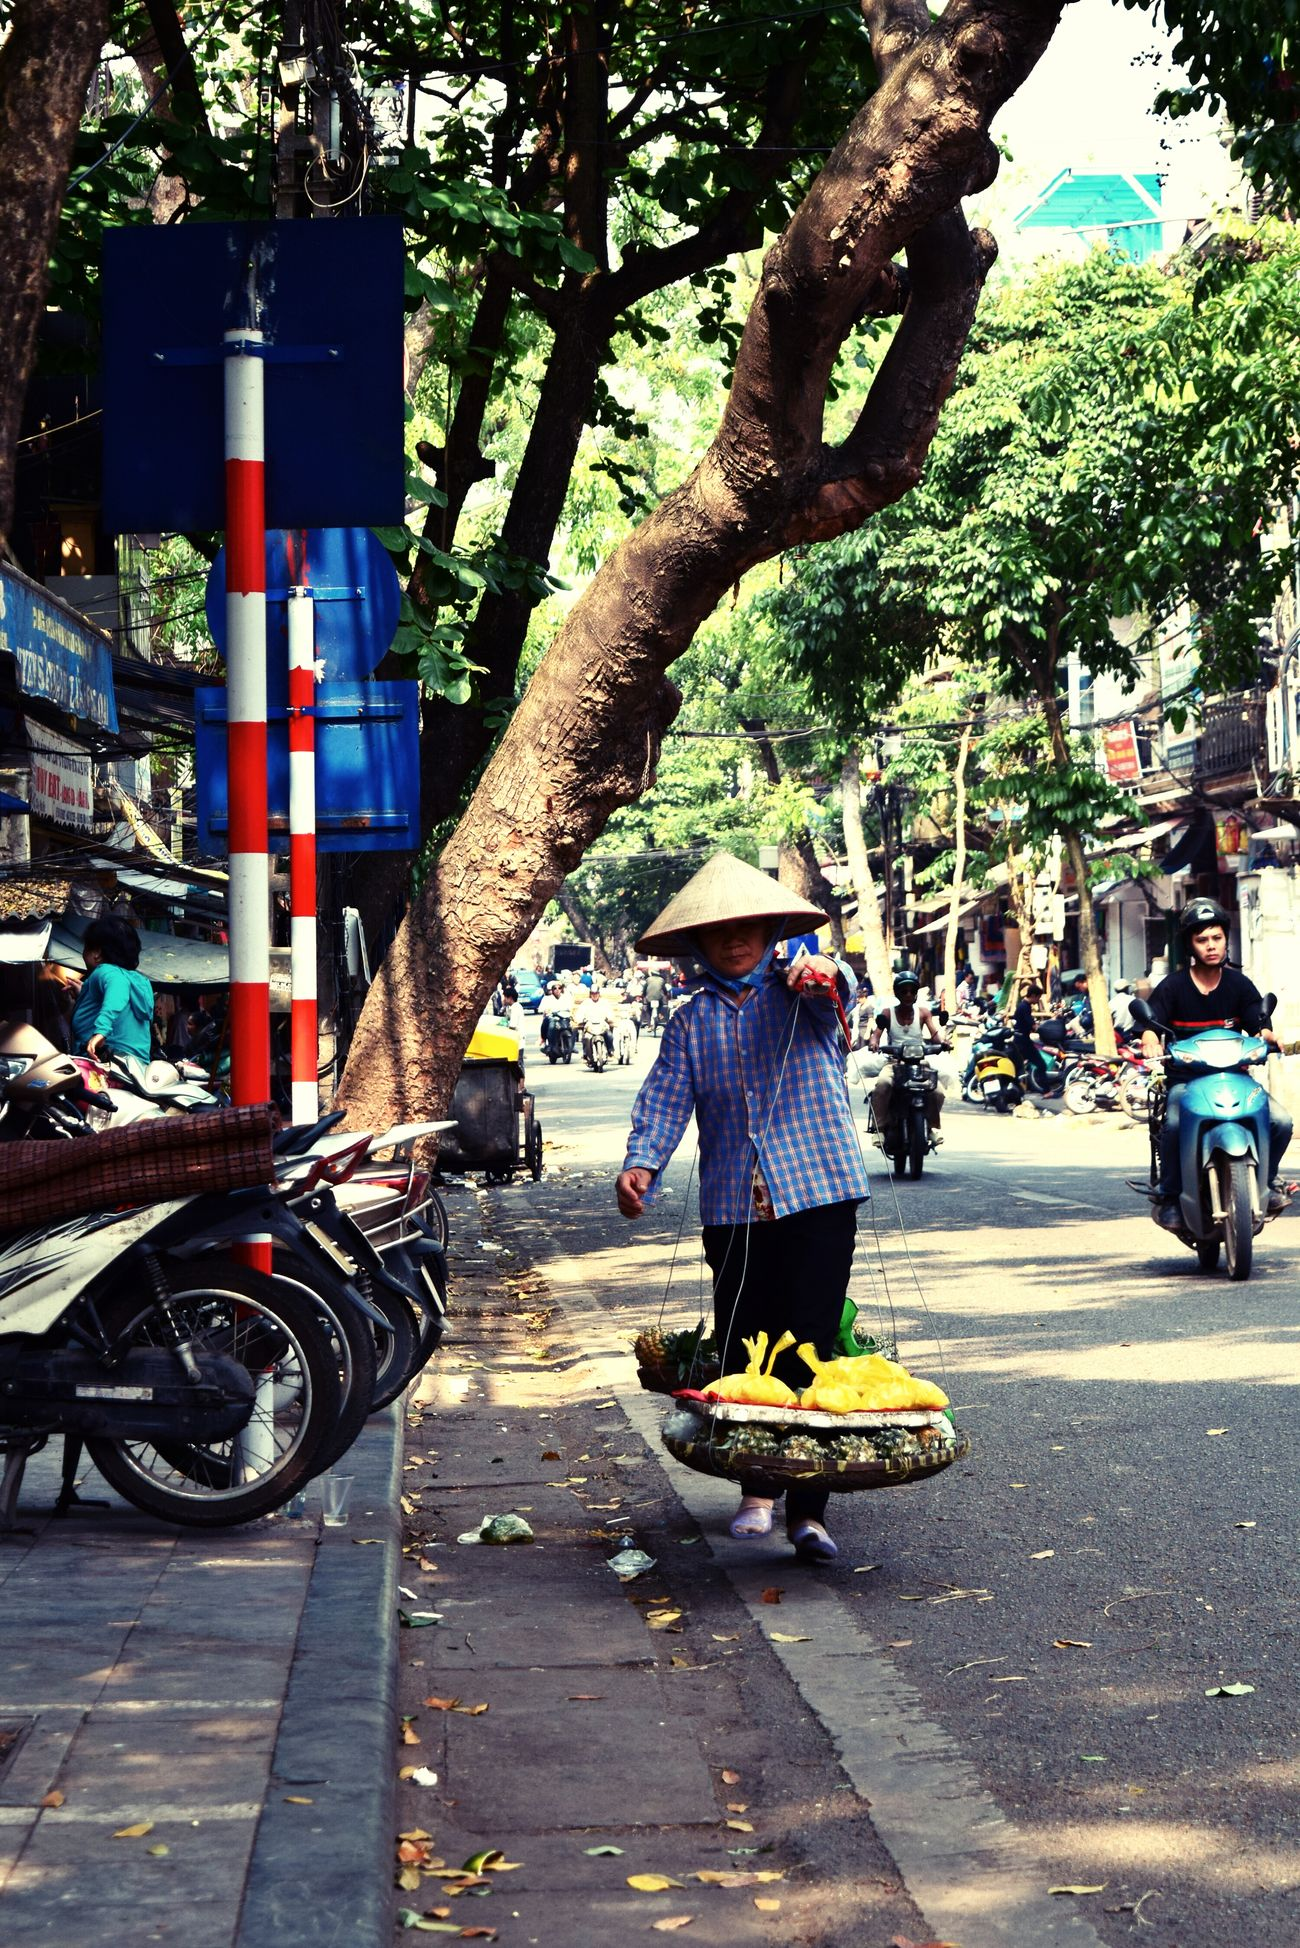 Traveling Helloworld Holidays Hanoi Oldquarter Hanoi , Vietnam Vietnam Travel Travel Photography Tadaa Community Cityscapes Taking Pictures Walking Around Woman At Work